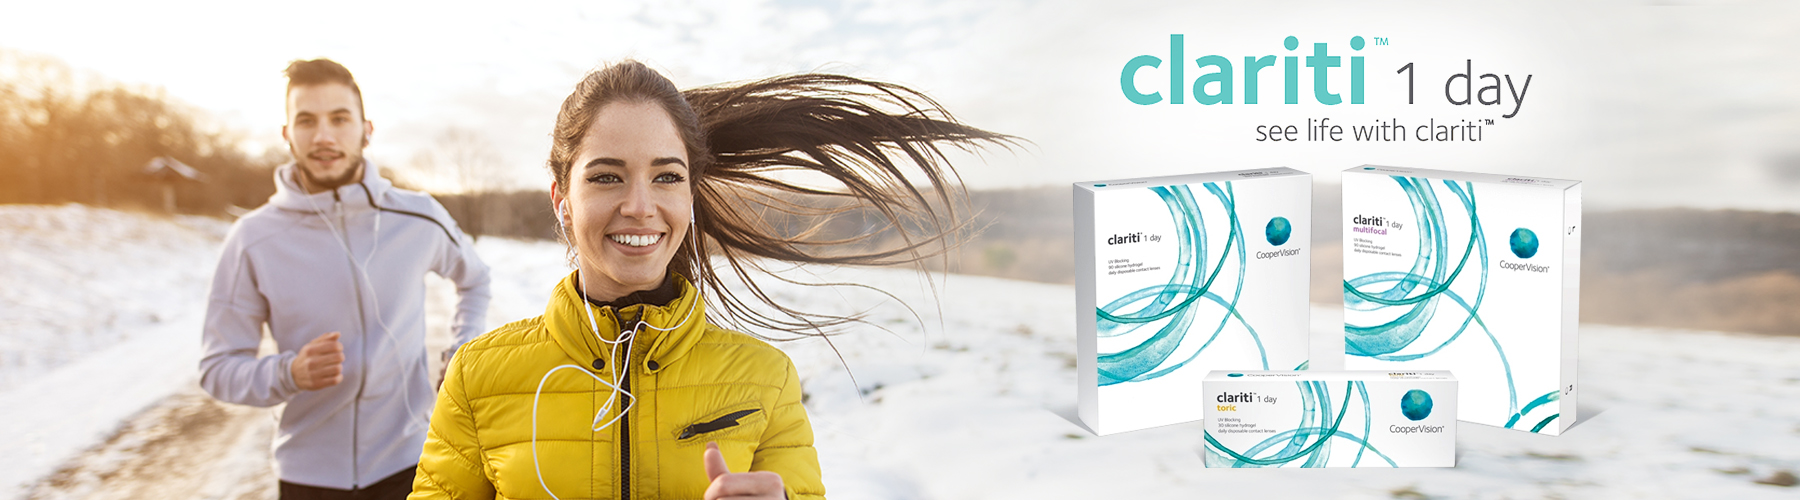 Clariti 1 day contact lenses near Chicago